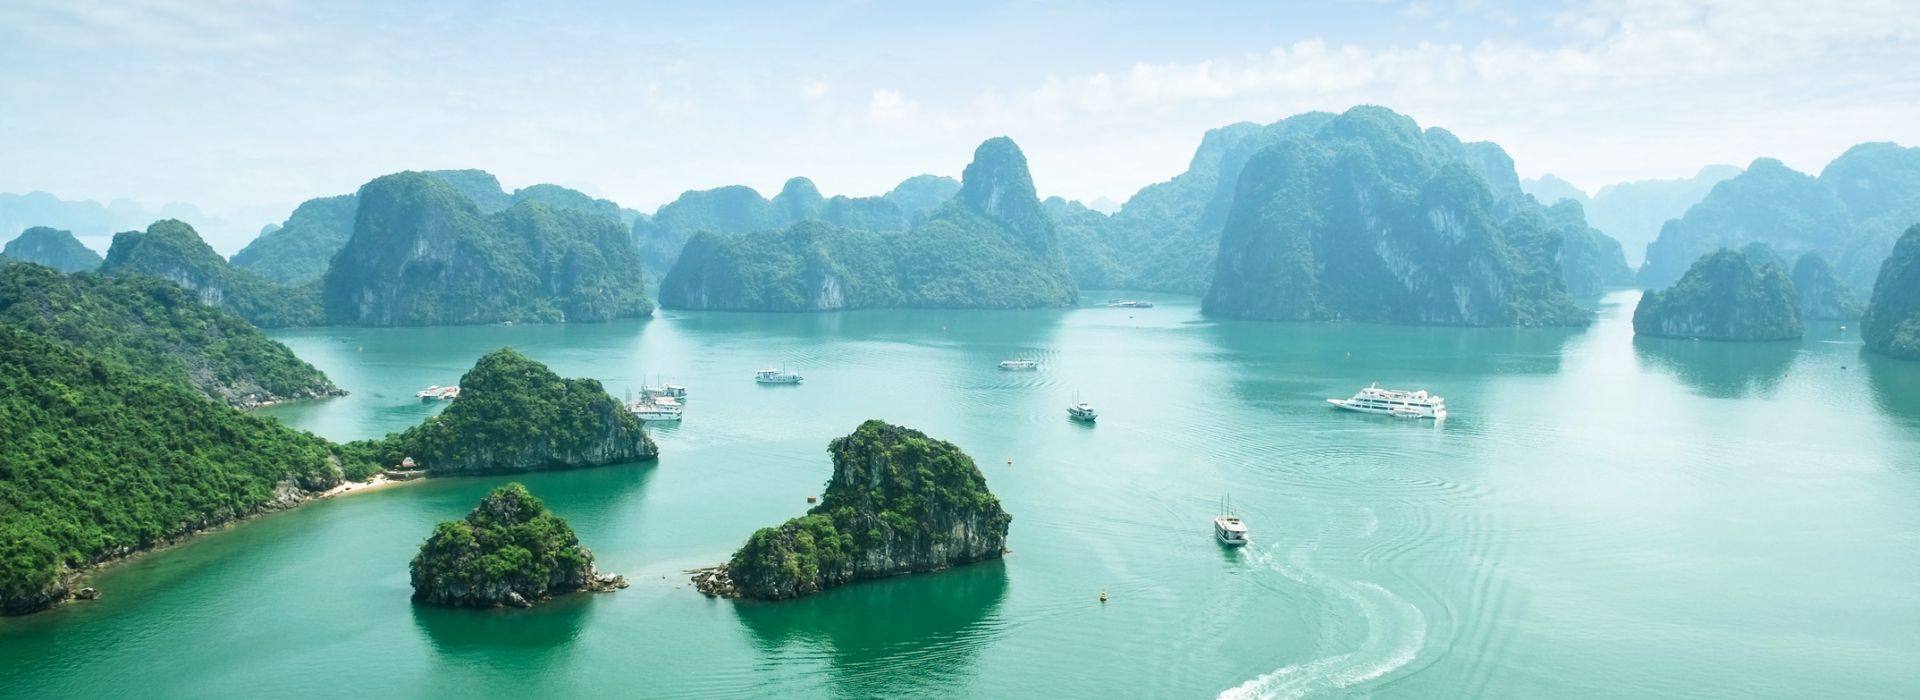 Vacation Tour Packages to Vietnam